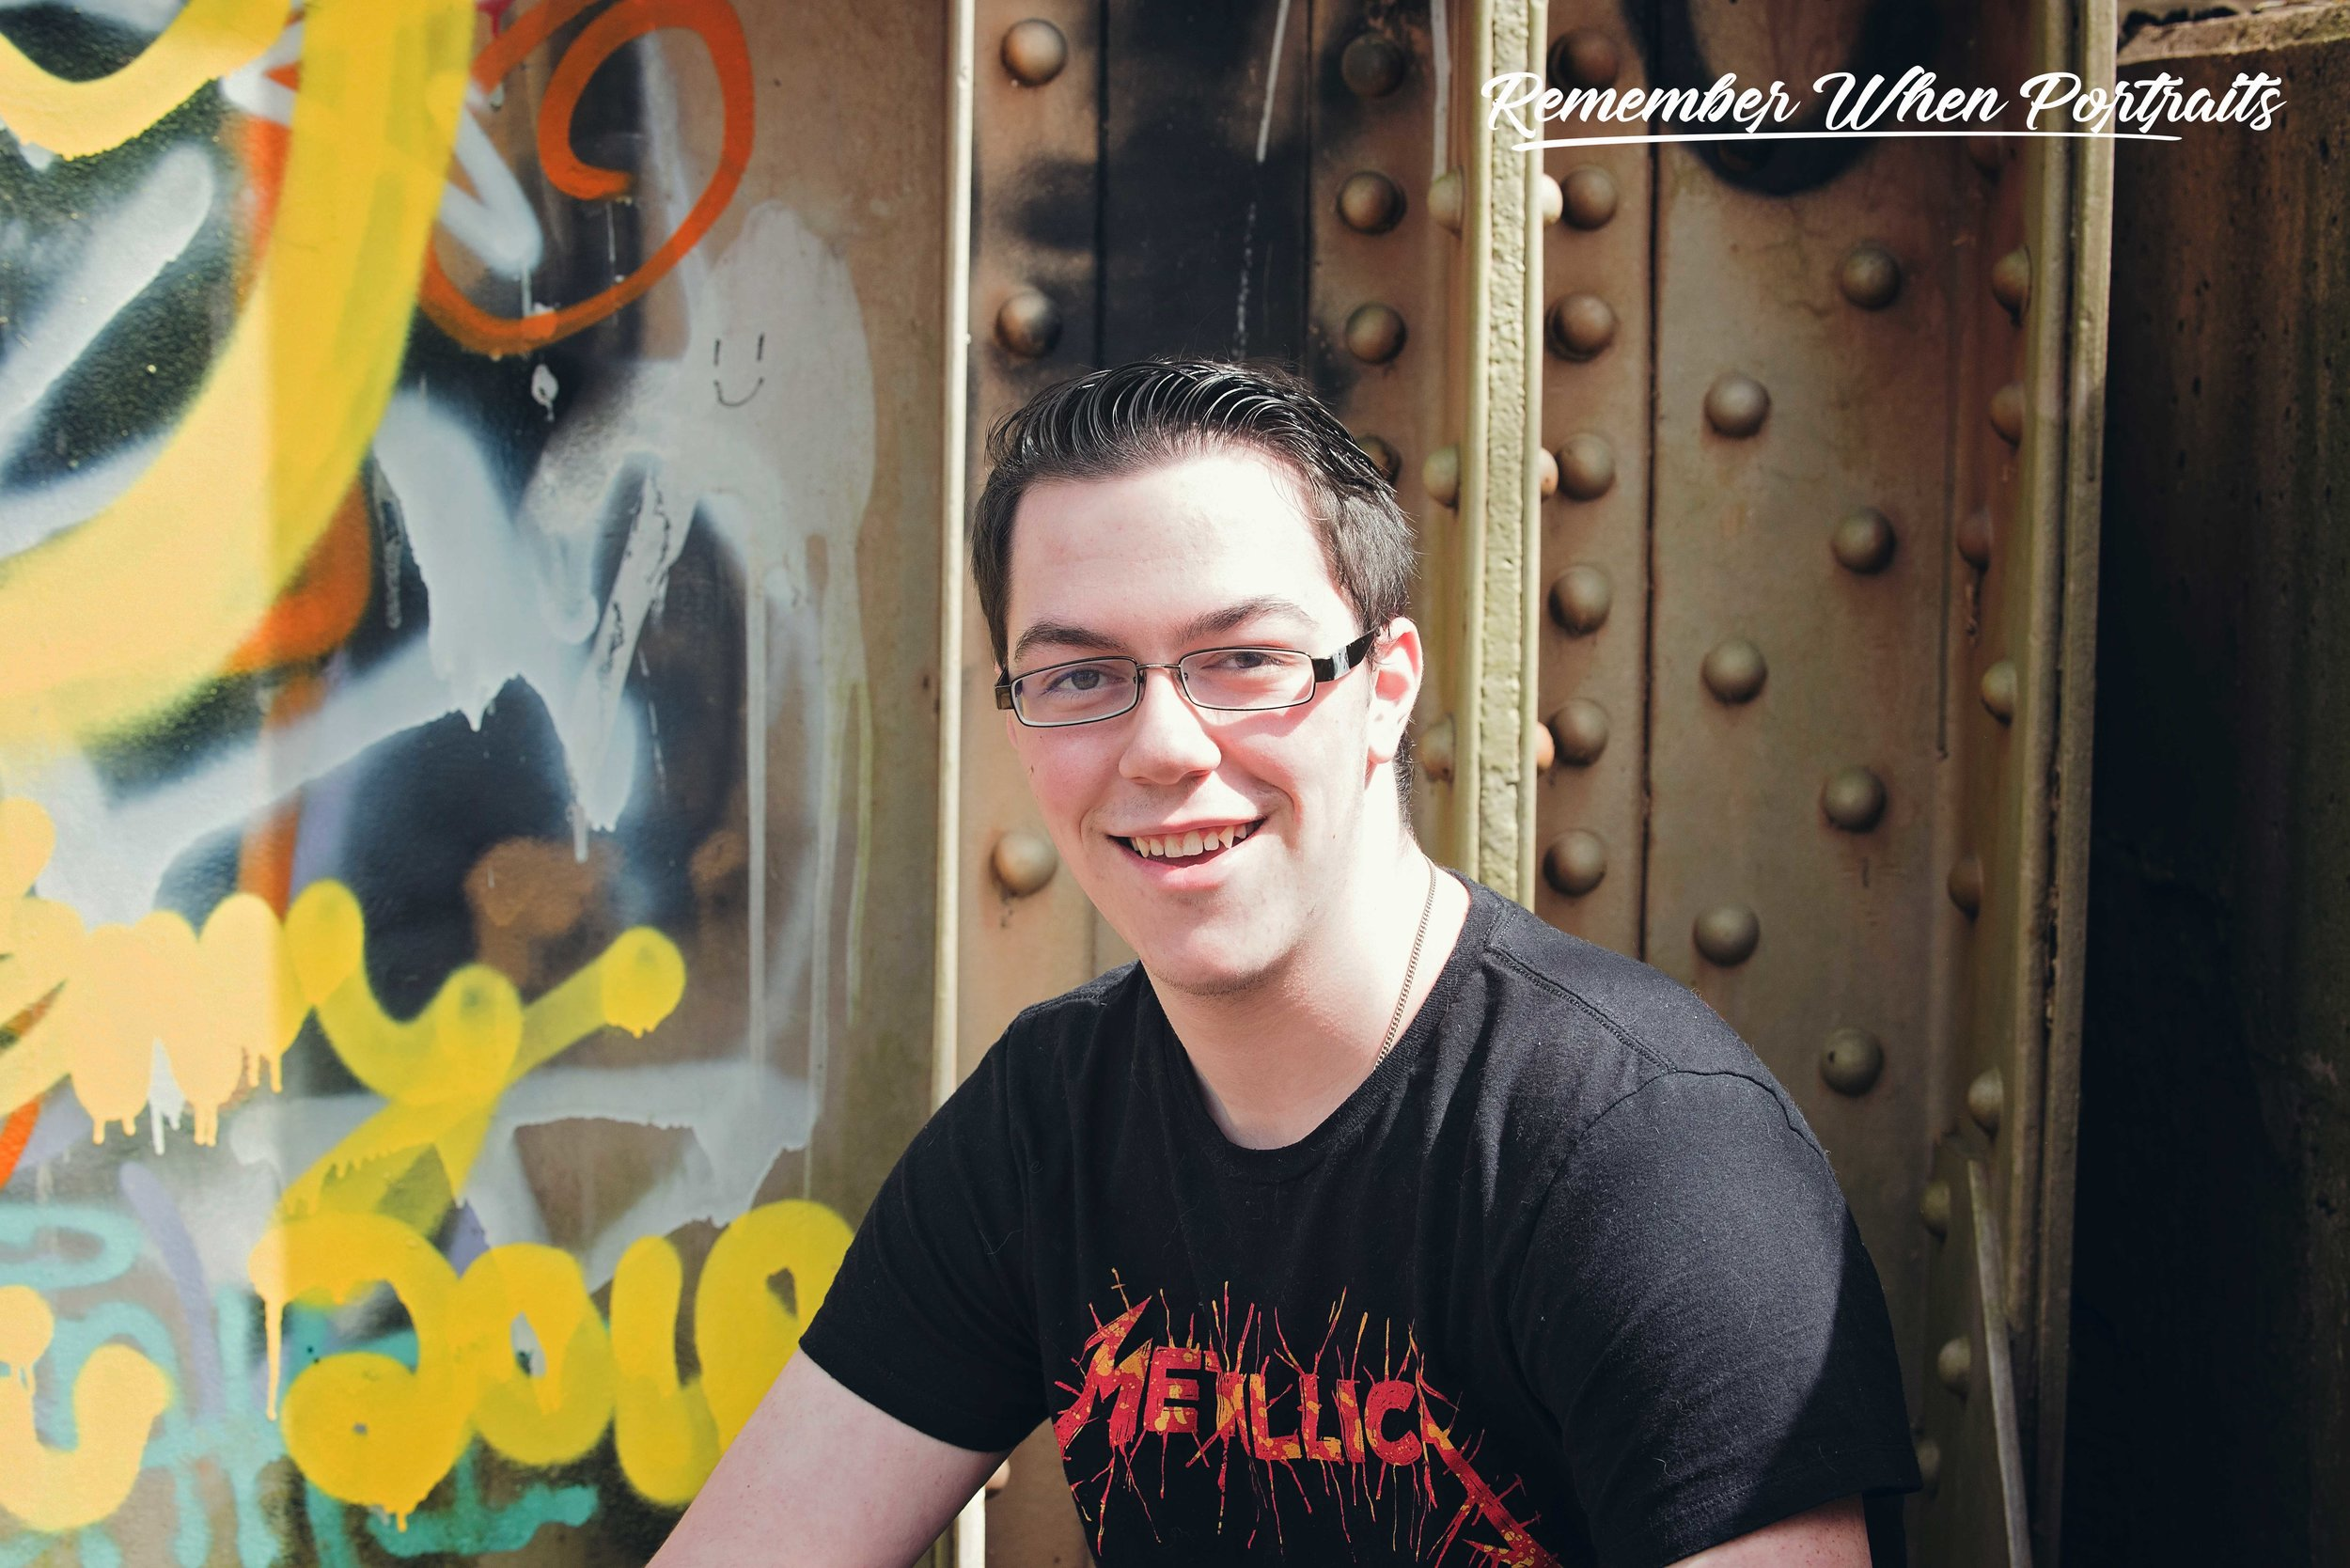 Kyle Smith Moeller High School Cincinnati Ohio Remember When Portraits Senior Photos